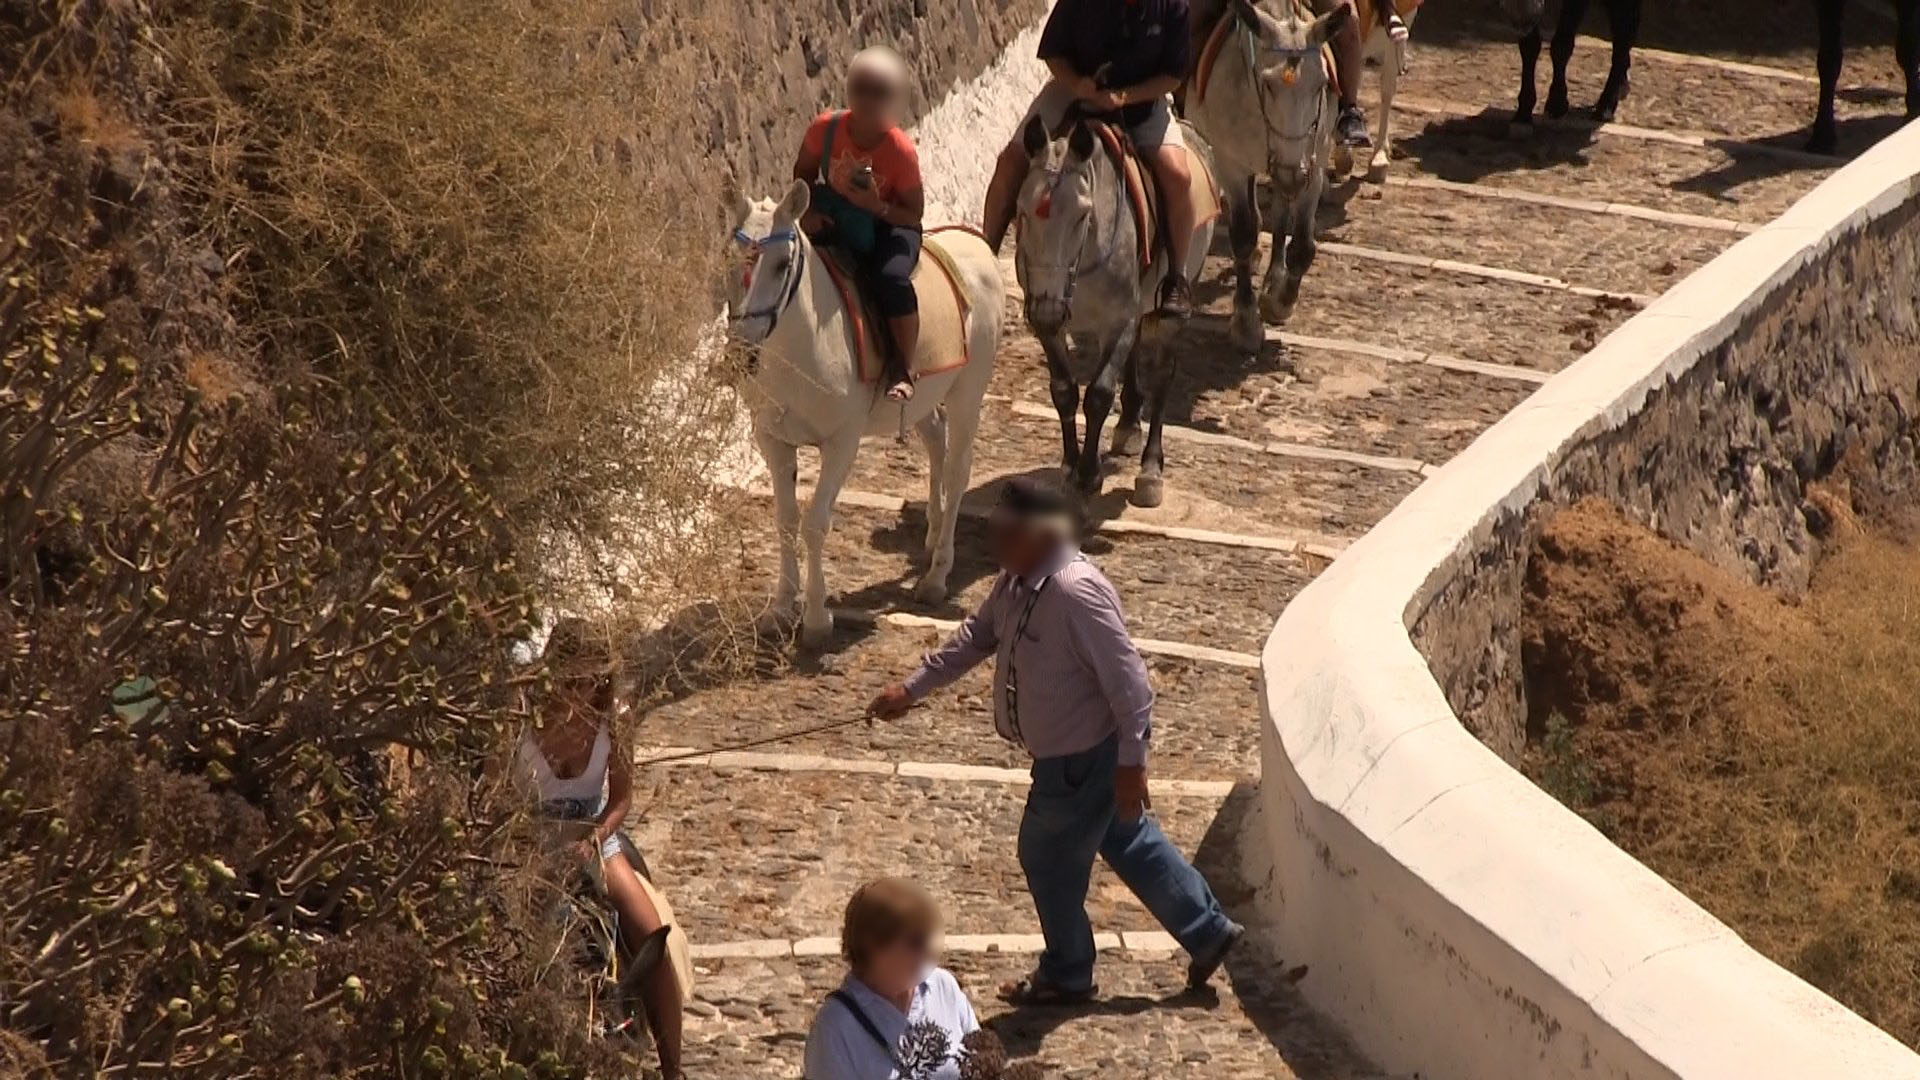 Eyewitnesses documented several situations in which walkers were forced to one side or almost pushed over or trampled by donkeys and mules.